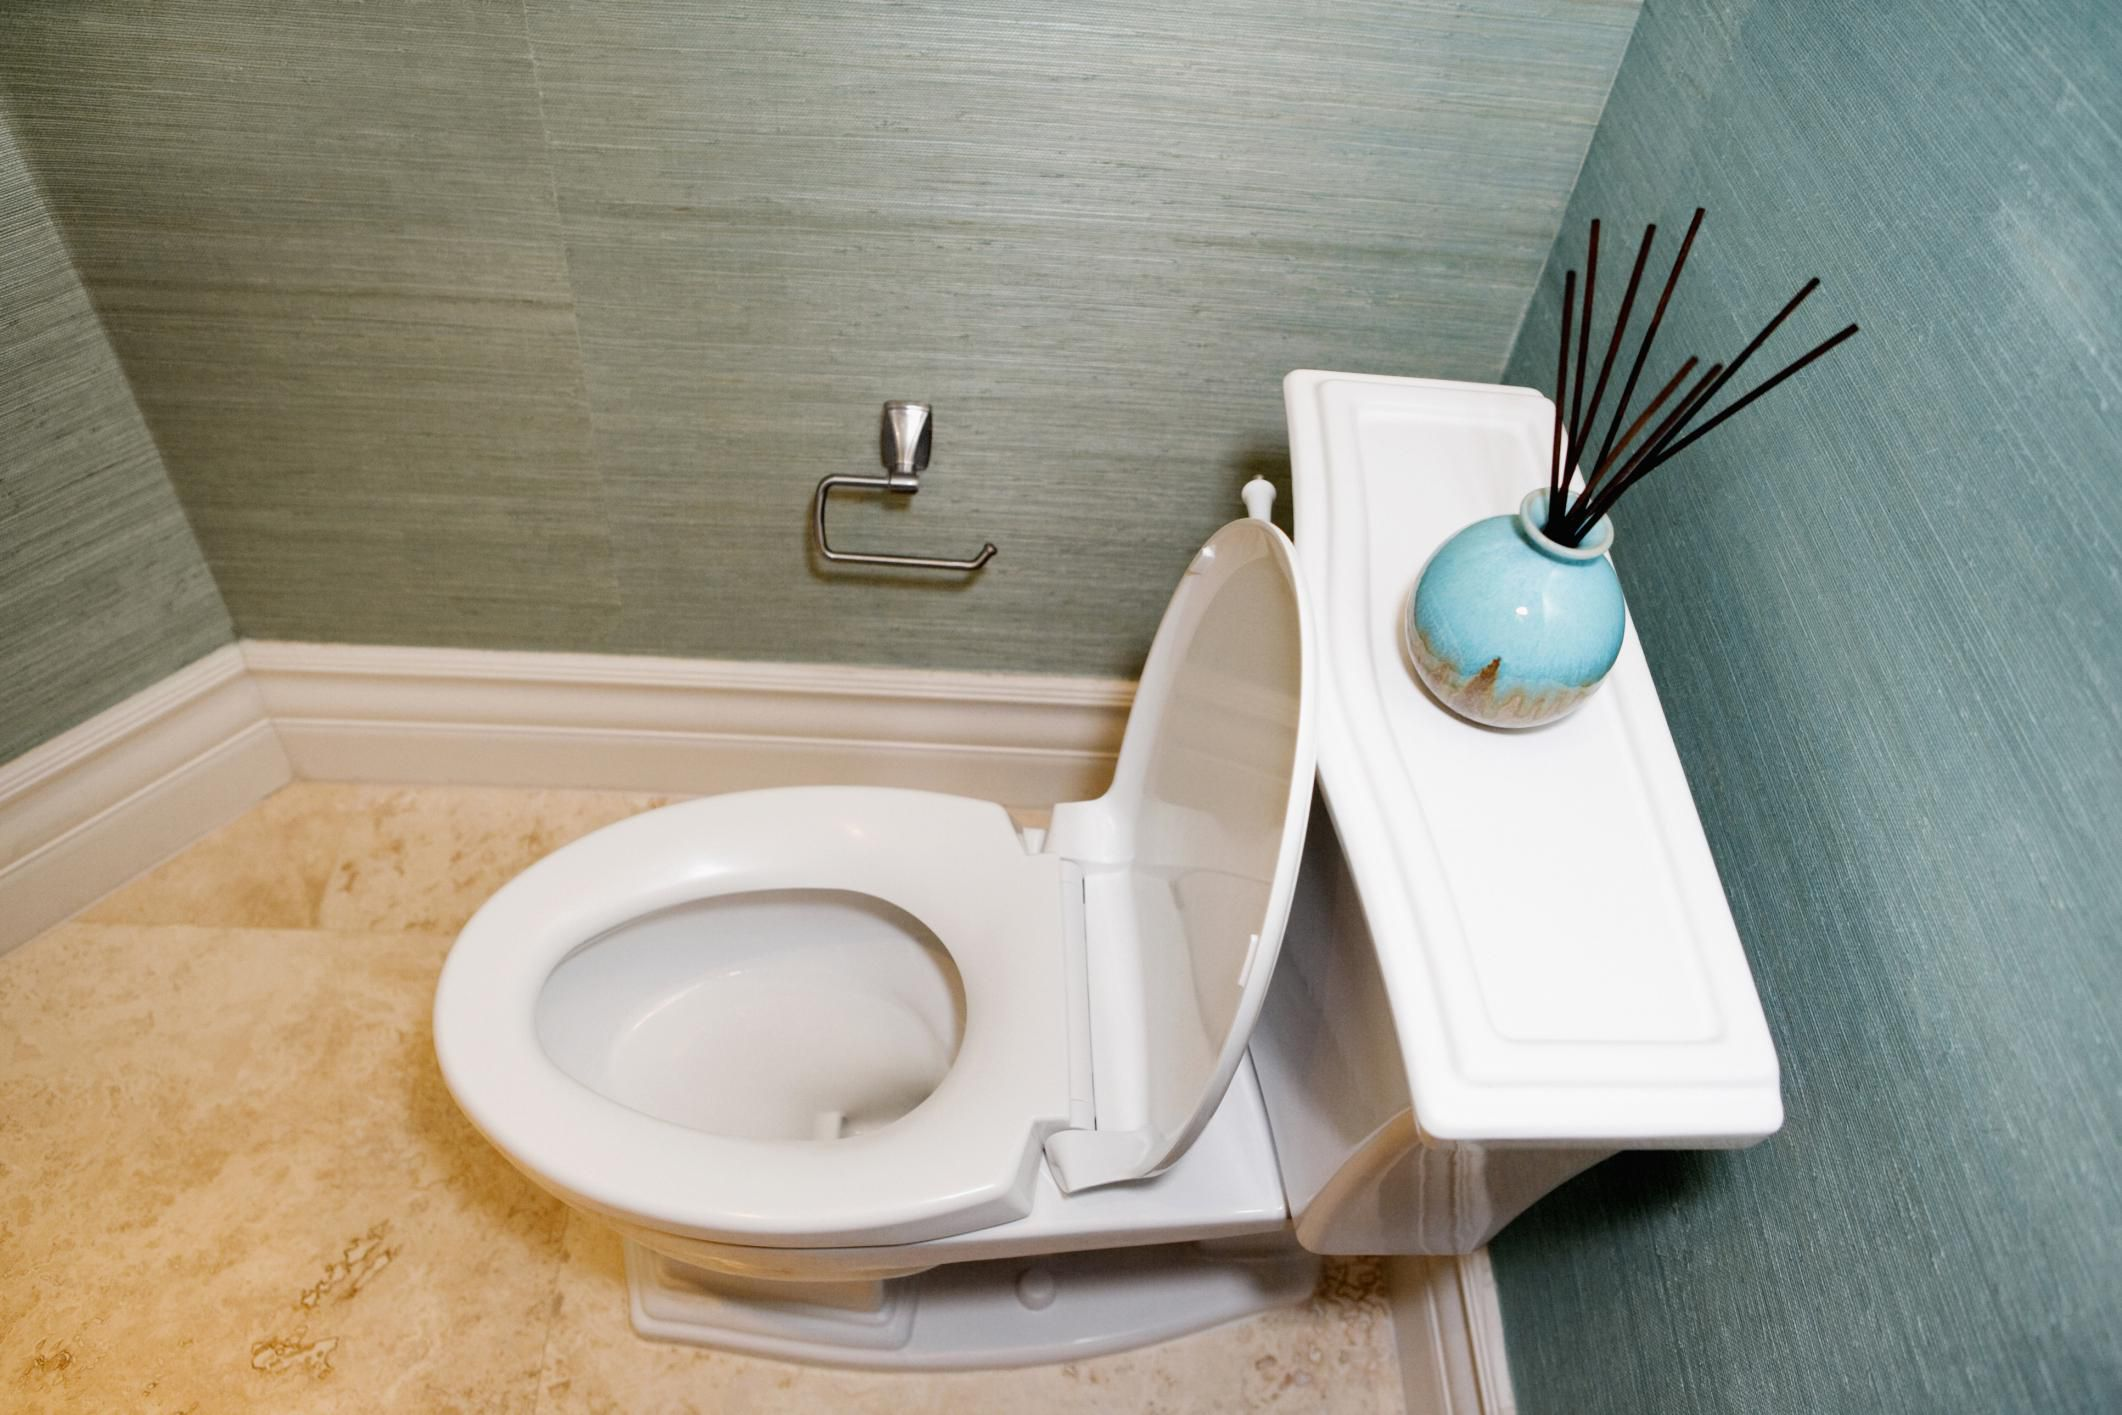 Options To Consider When Buying A New Toilet